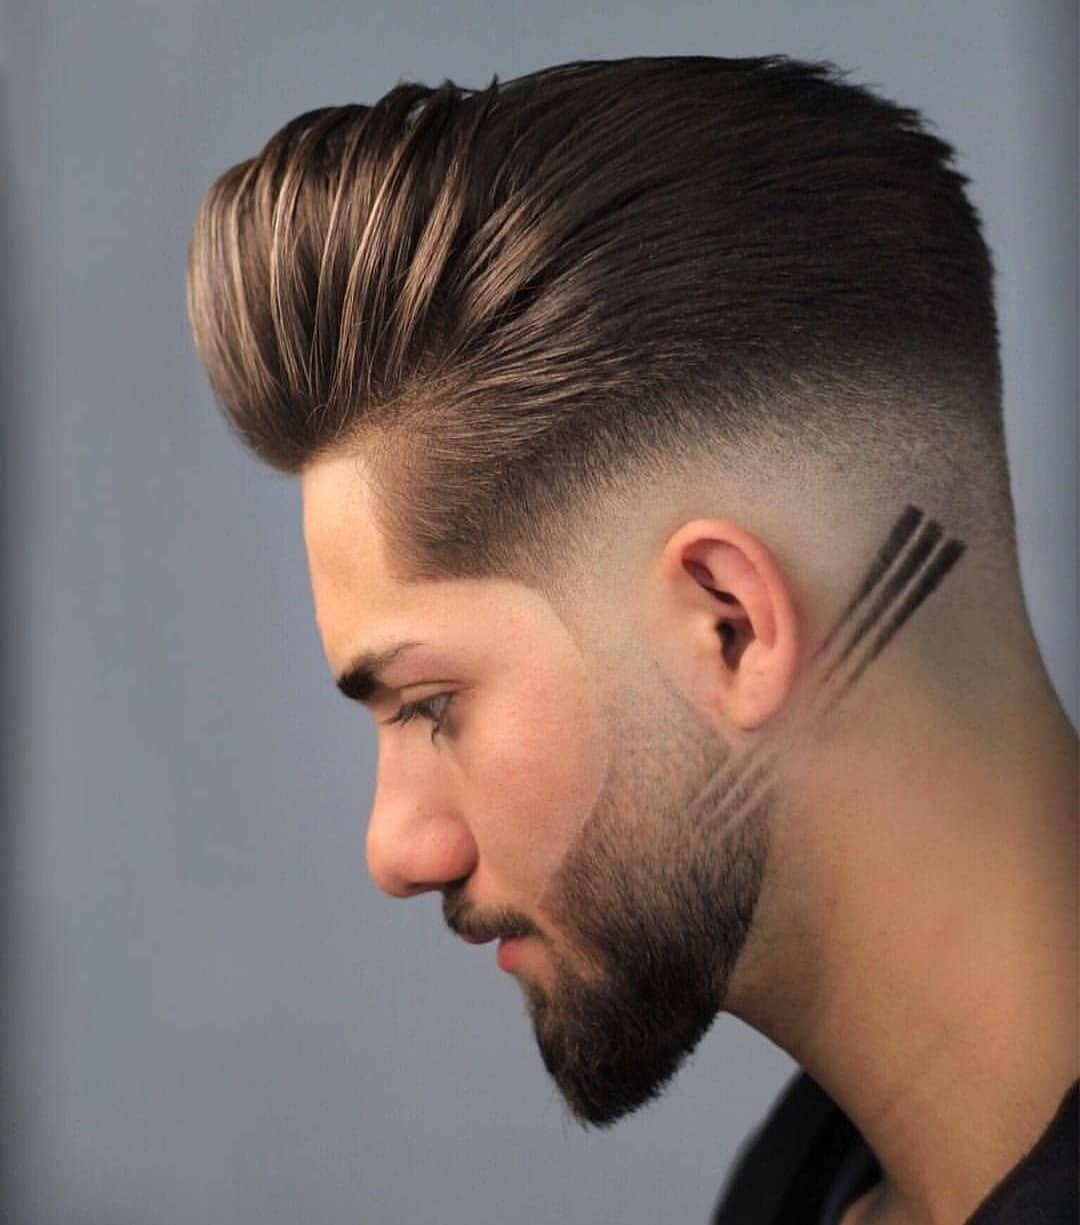 10 Most Preferred Short Haircut Style For Men 2019men Shaircuts Haircut Haircutstyles Manhair Men Sh Gents Hair Style Men Haircut Styles Haircuts For Men